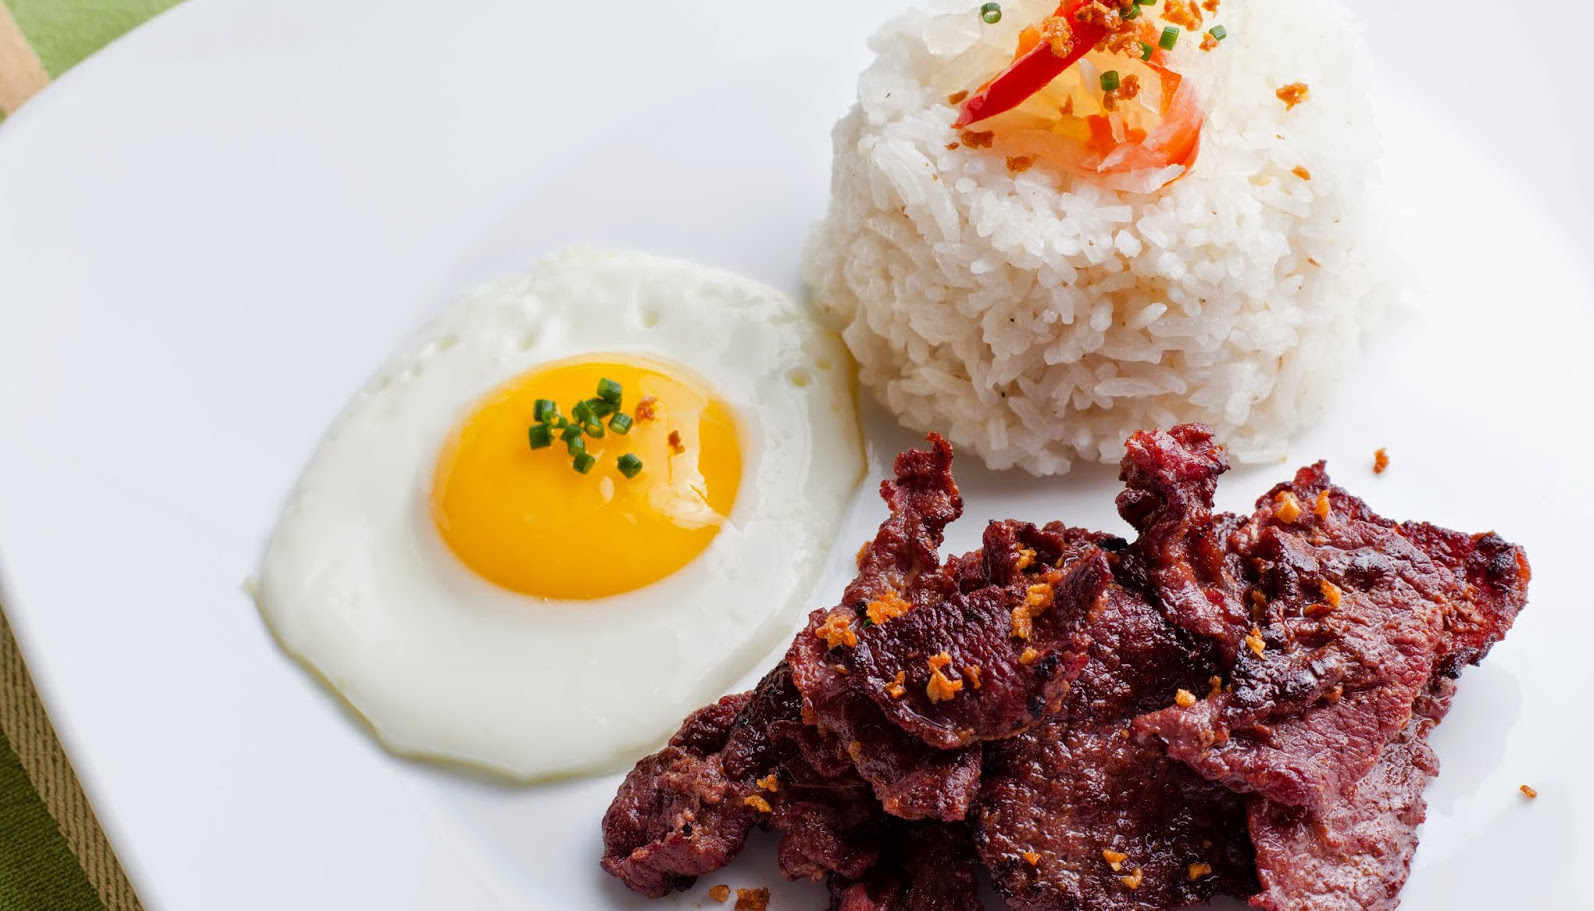 Tapsilog Among All Filipino Breakfasts